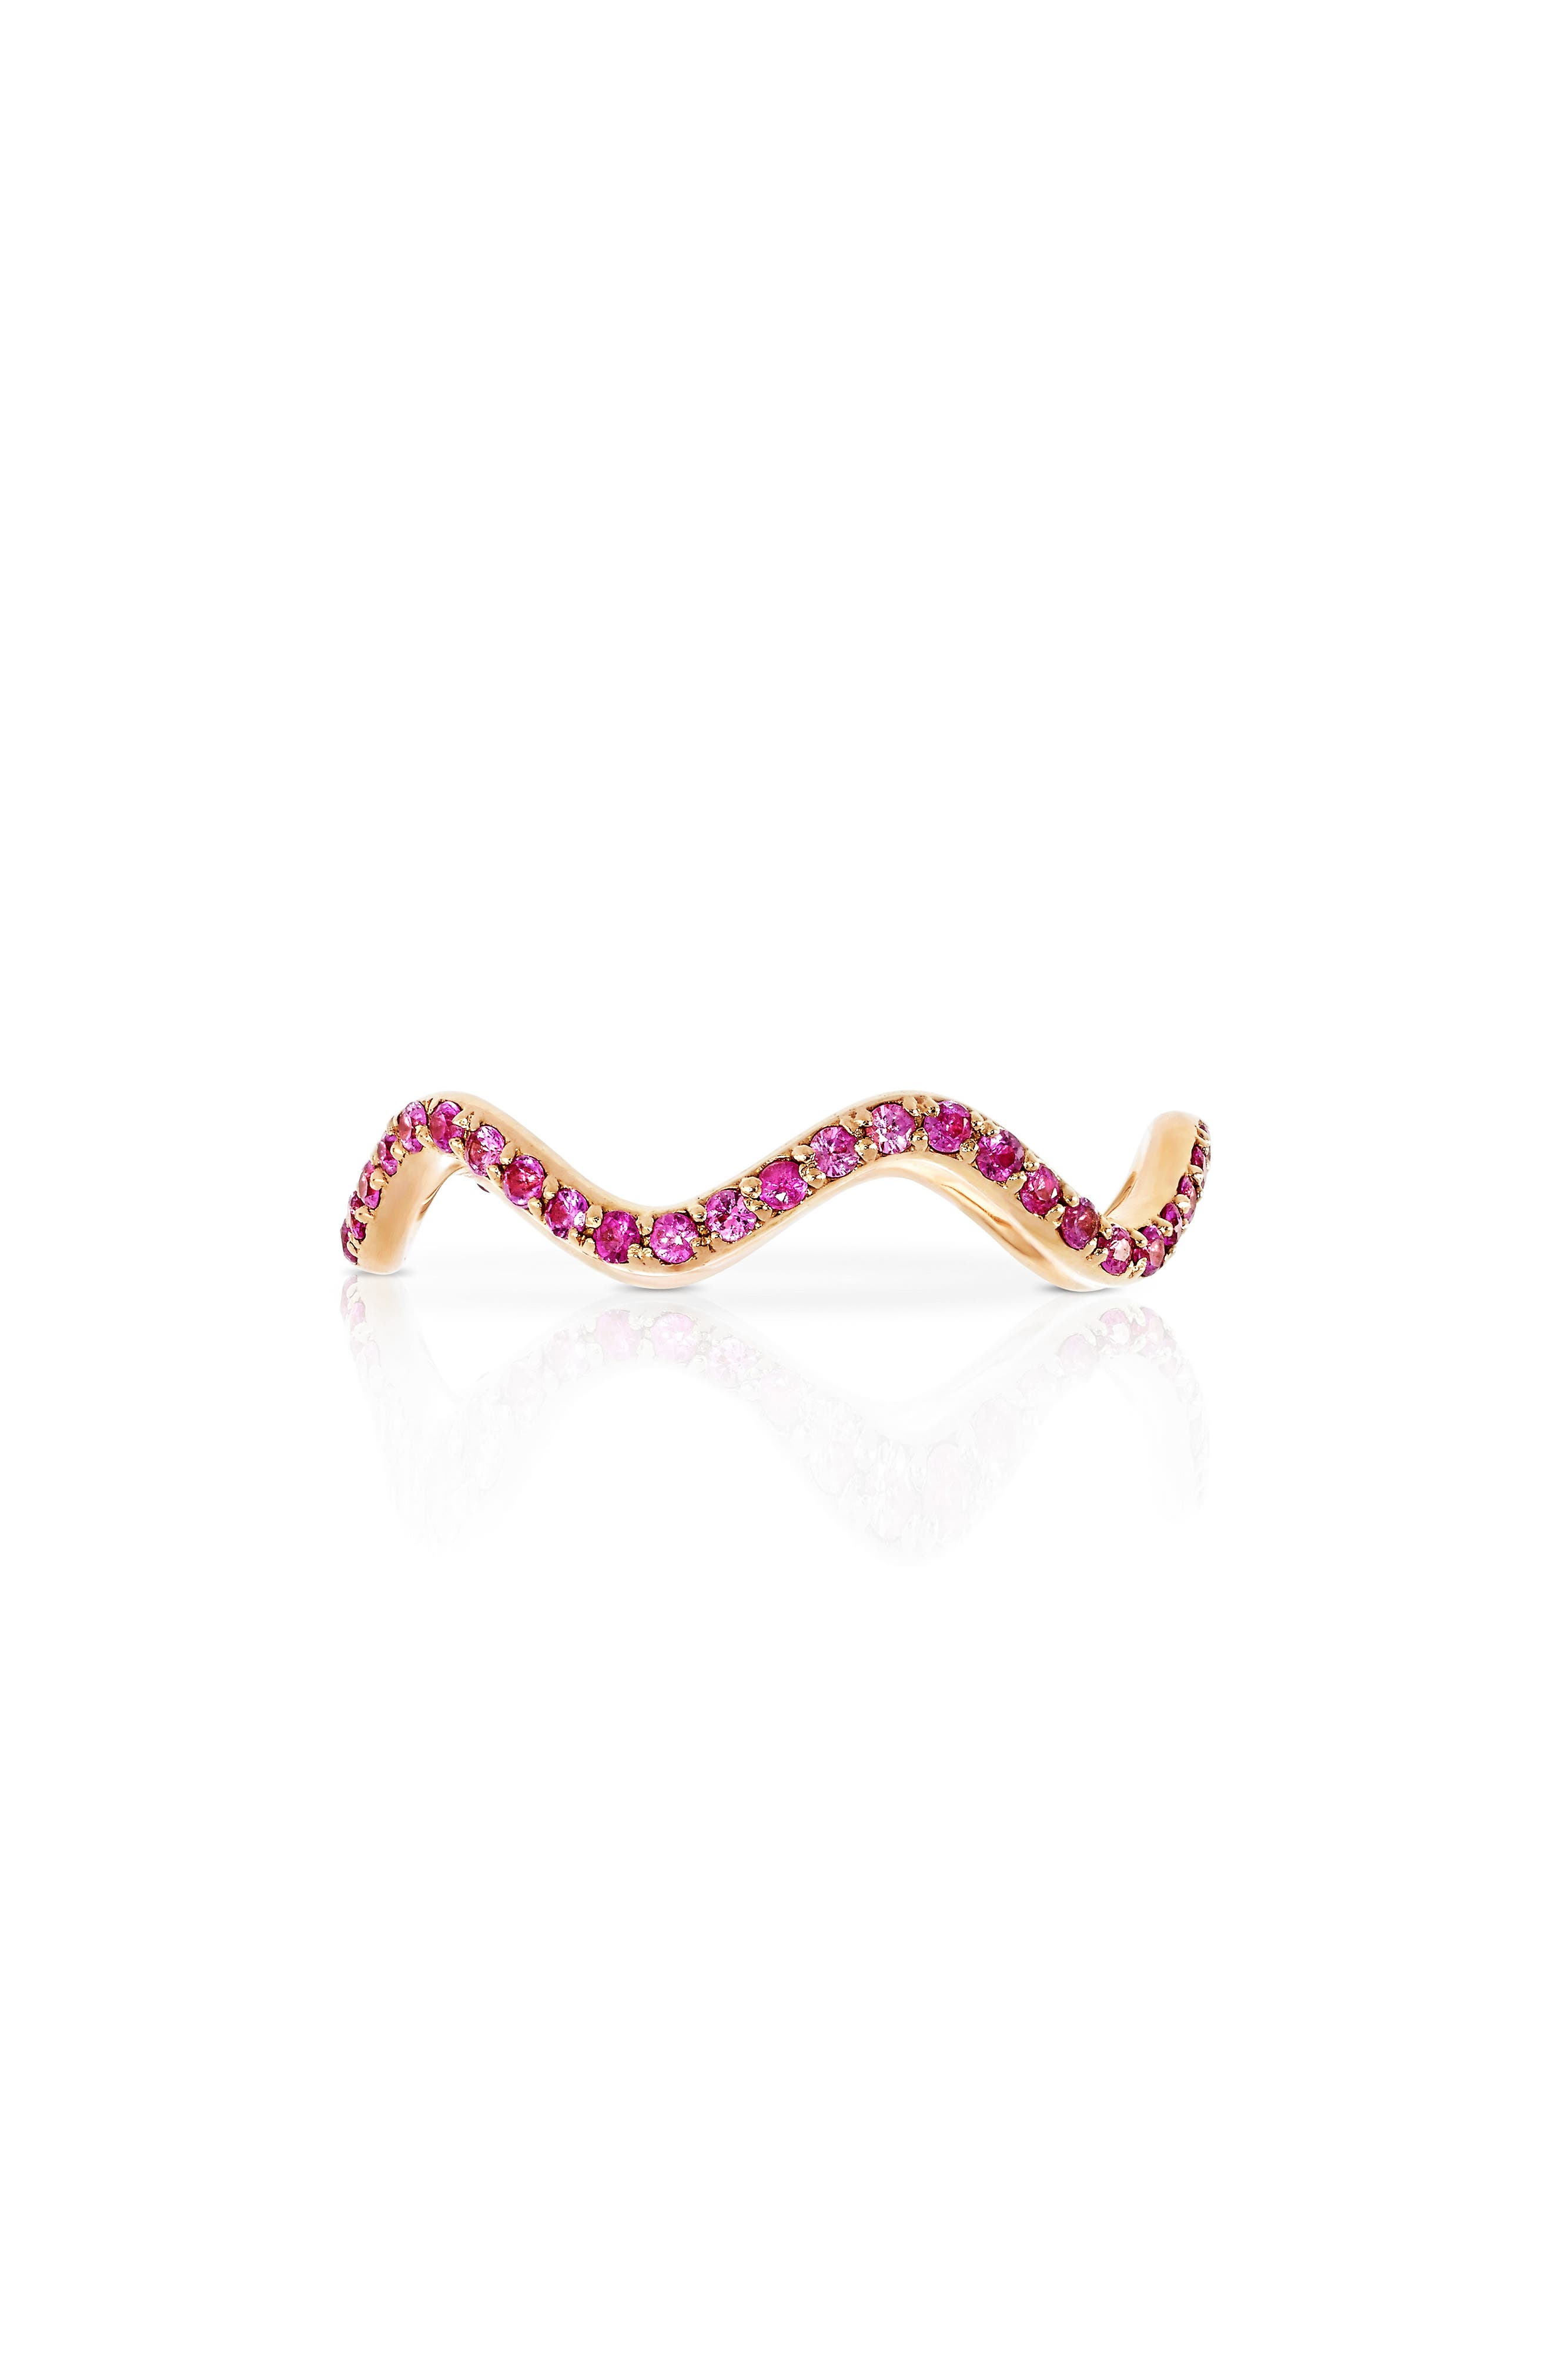 Alternate Image 1 Selected - Sabine Getty Baby Memphis Pink Sapphire Wave Band Ring